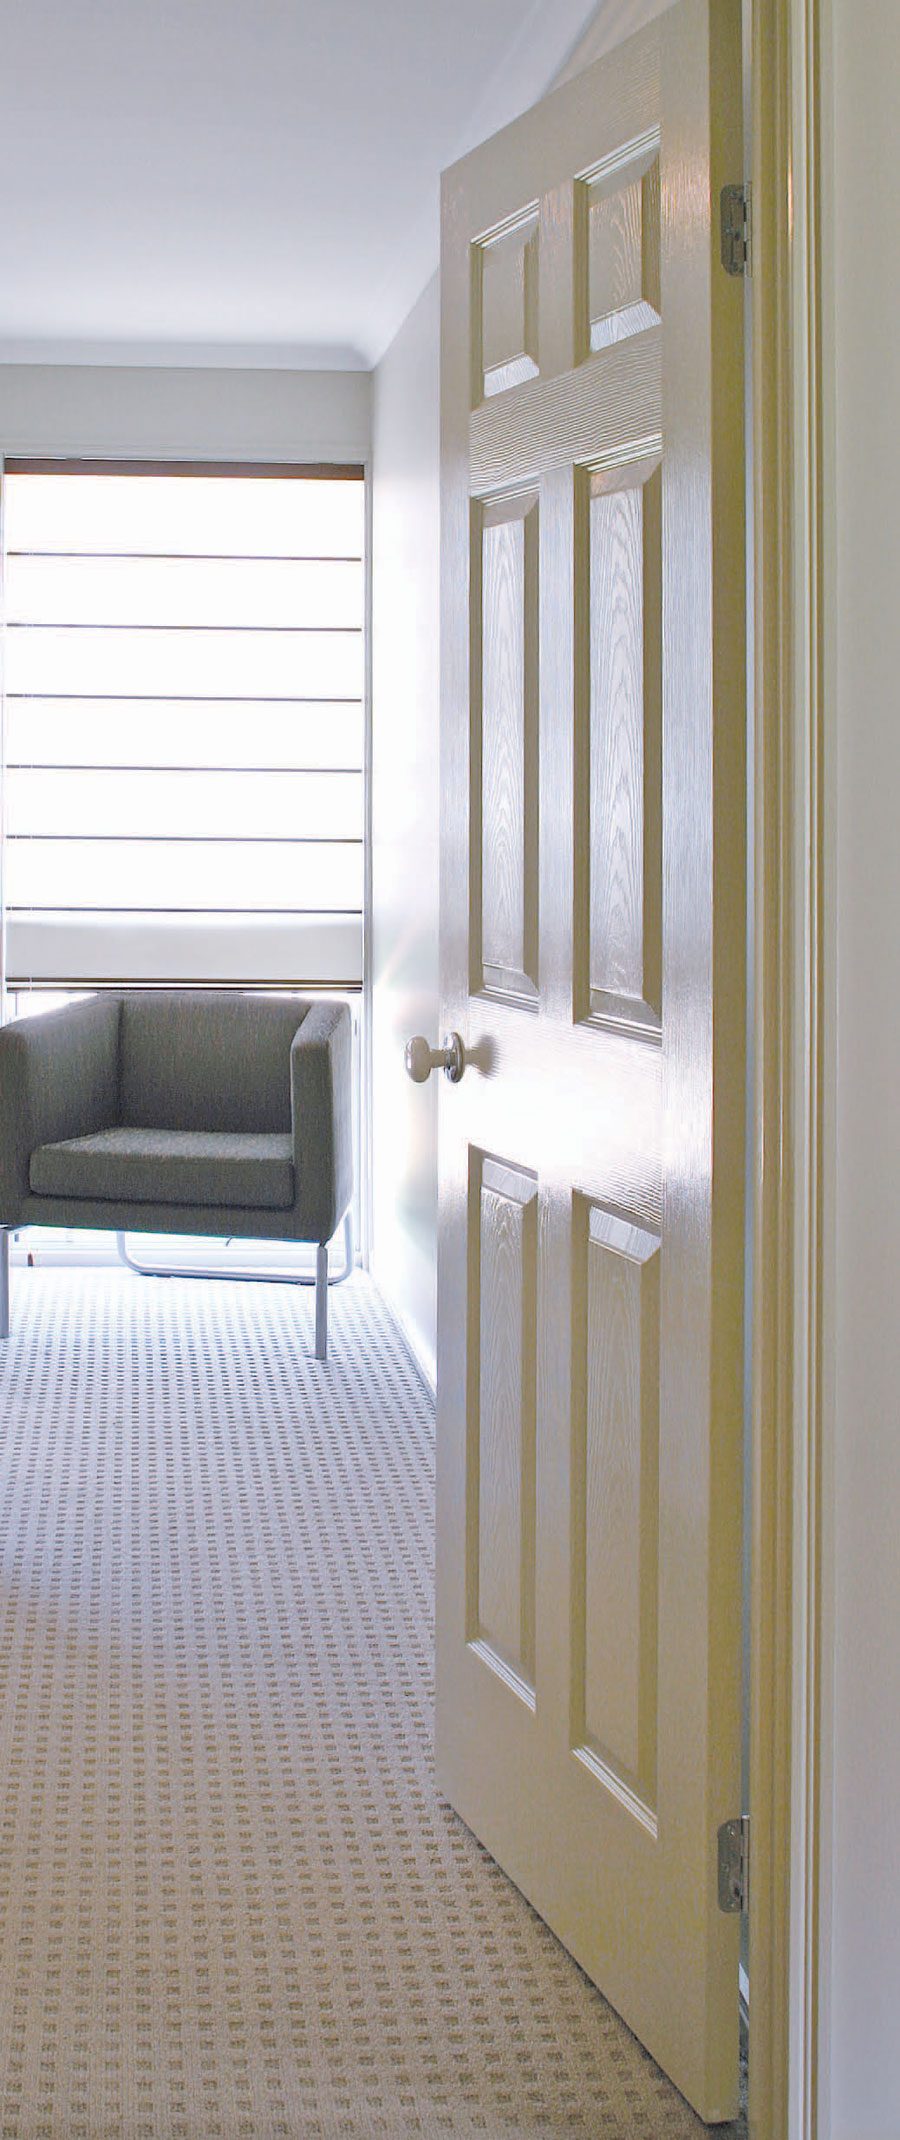 Rick S Doors Products Residential Products Moulded